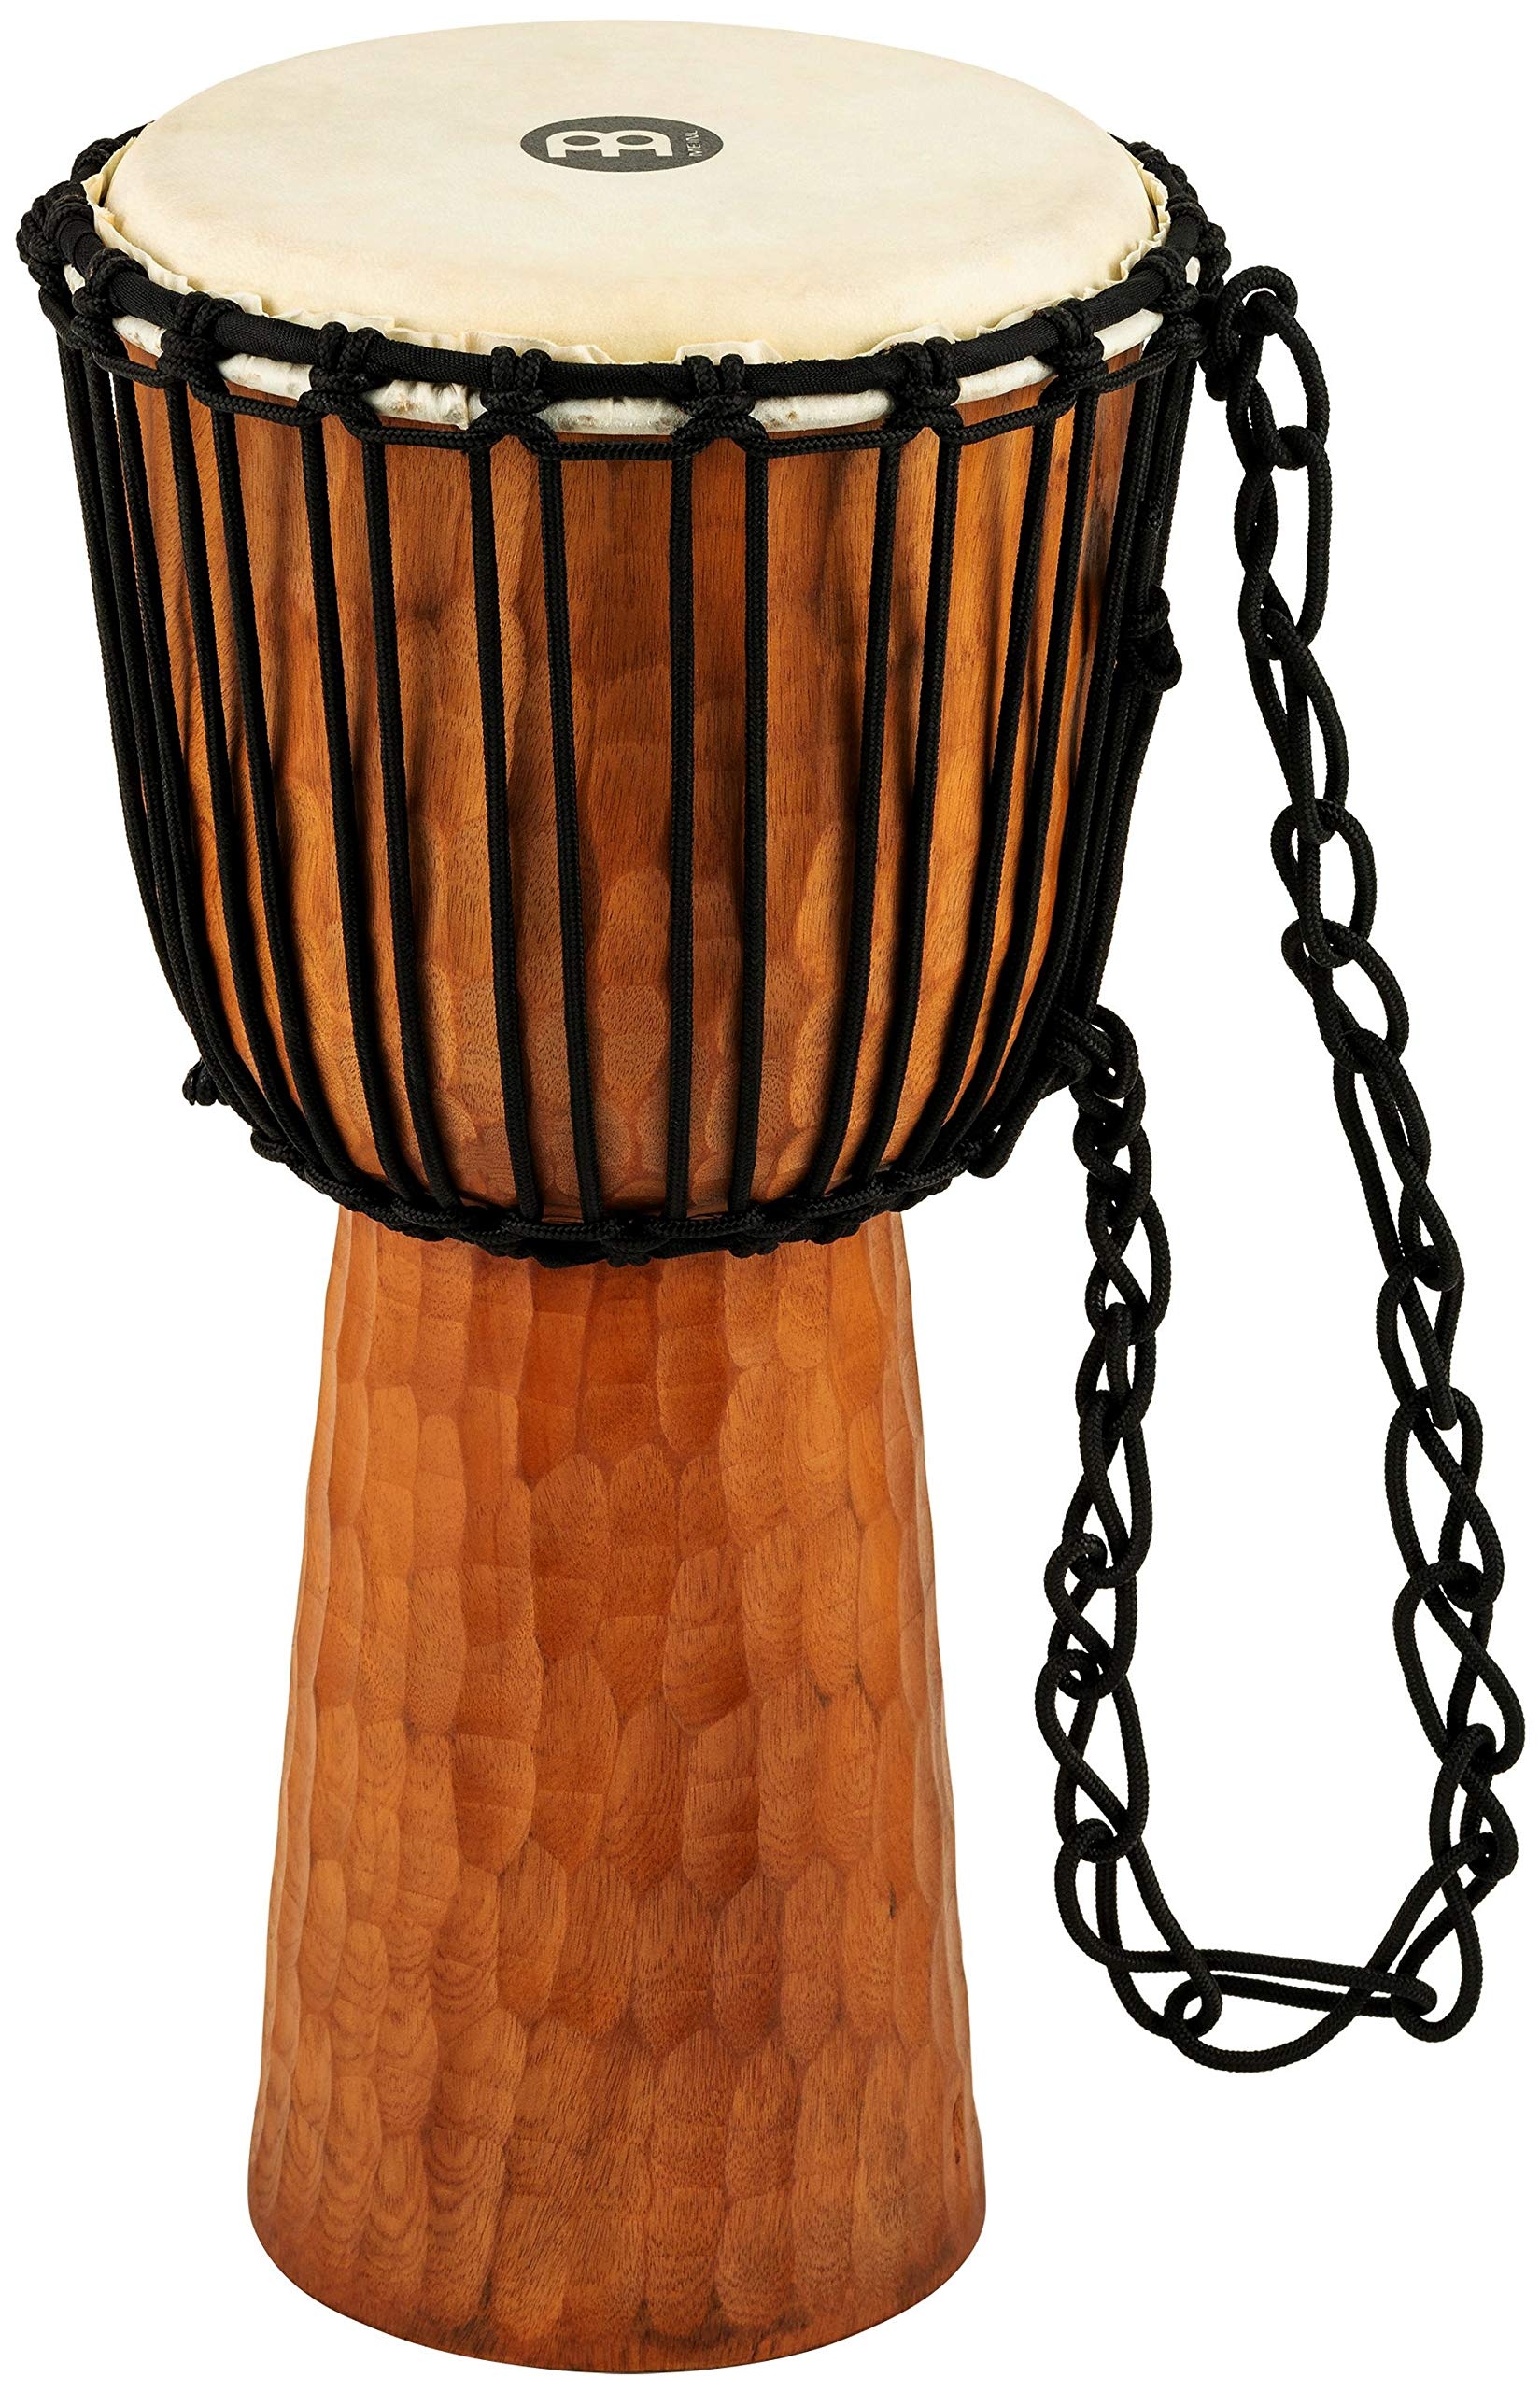 Meinl Djembe with Mahogany Wood - NOT MADE IN CHINA - 10'' Medium Size Rope Tuned Goat Skin Head, 2-YEAR WARRANTY (HDJ4-M) by Meinl Percussion